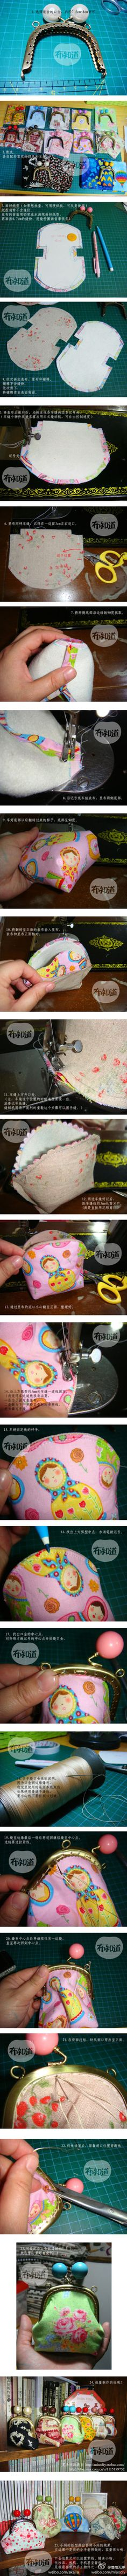 Coin Purse Tutorial - now I just need to figure out the dimensions Sewing Hacks, Sewing Tutorials, Sewing Crafts, Sewing Projects, Diy Coin Purse, Coin Purses, Frame Purse, Purse Tutorial, Diy Tutorial